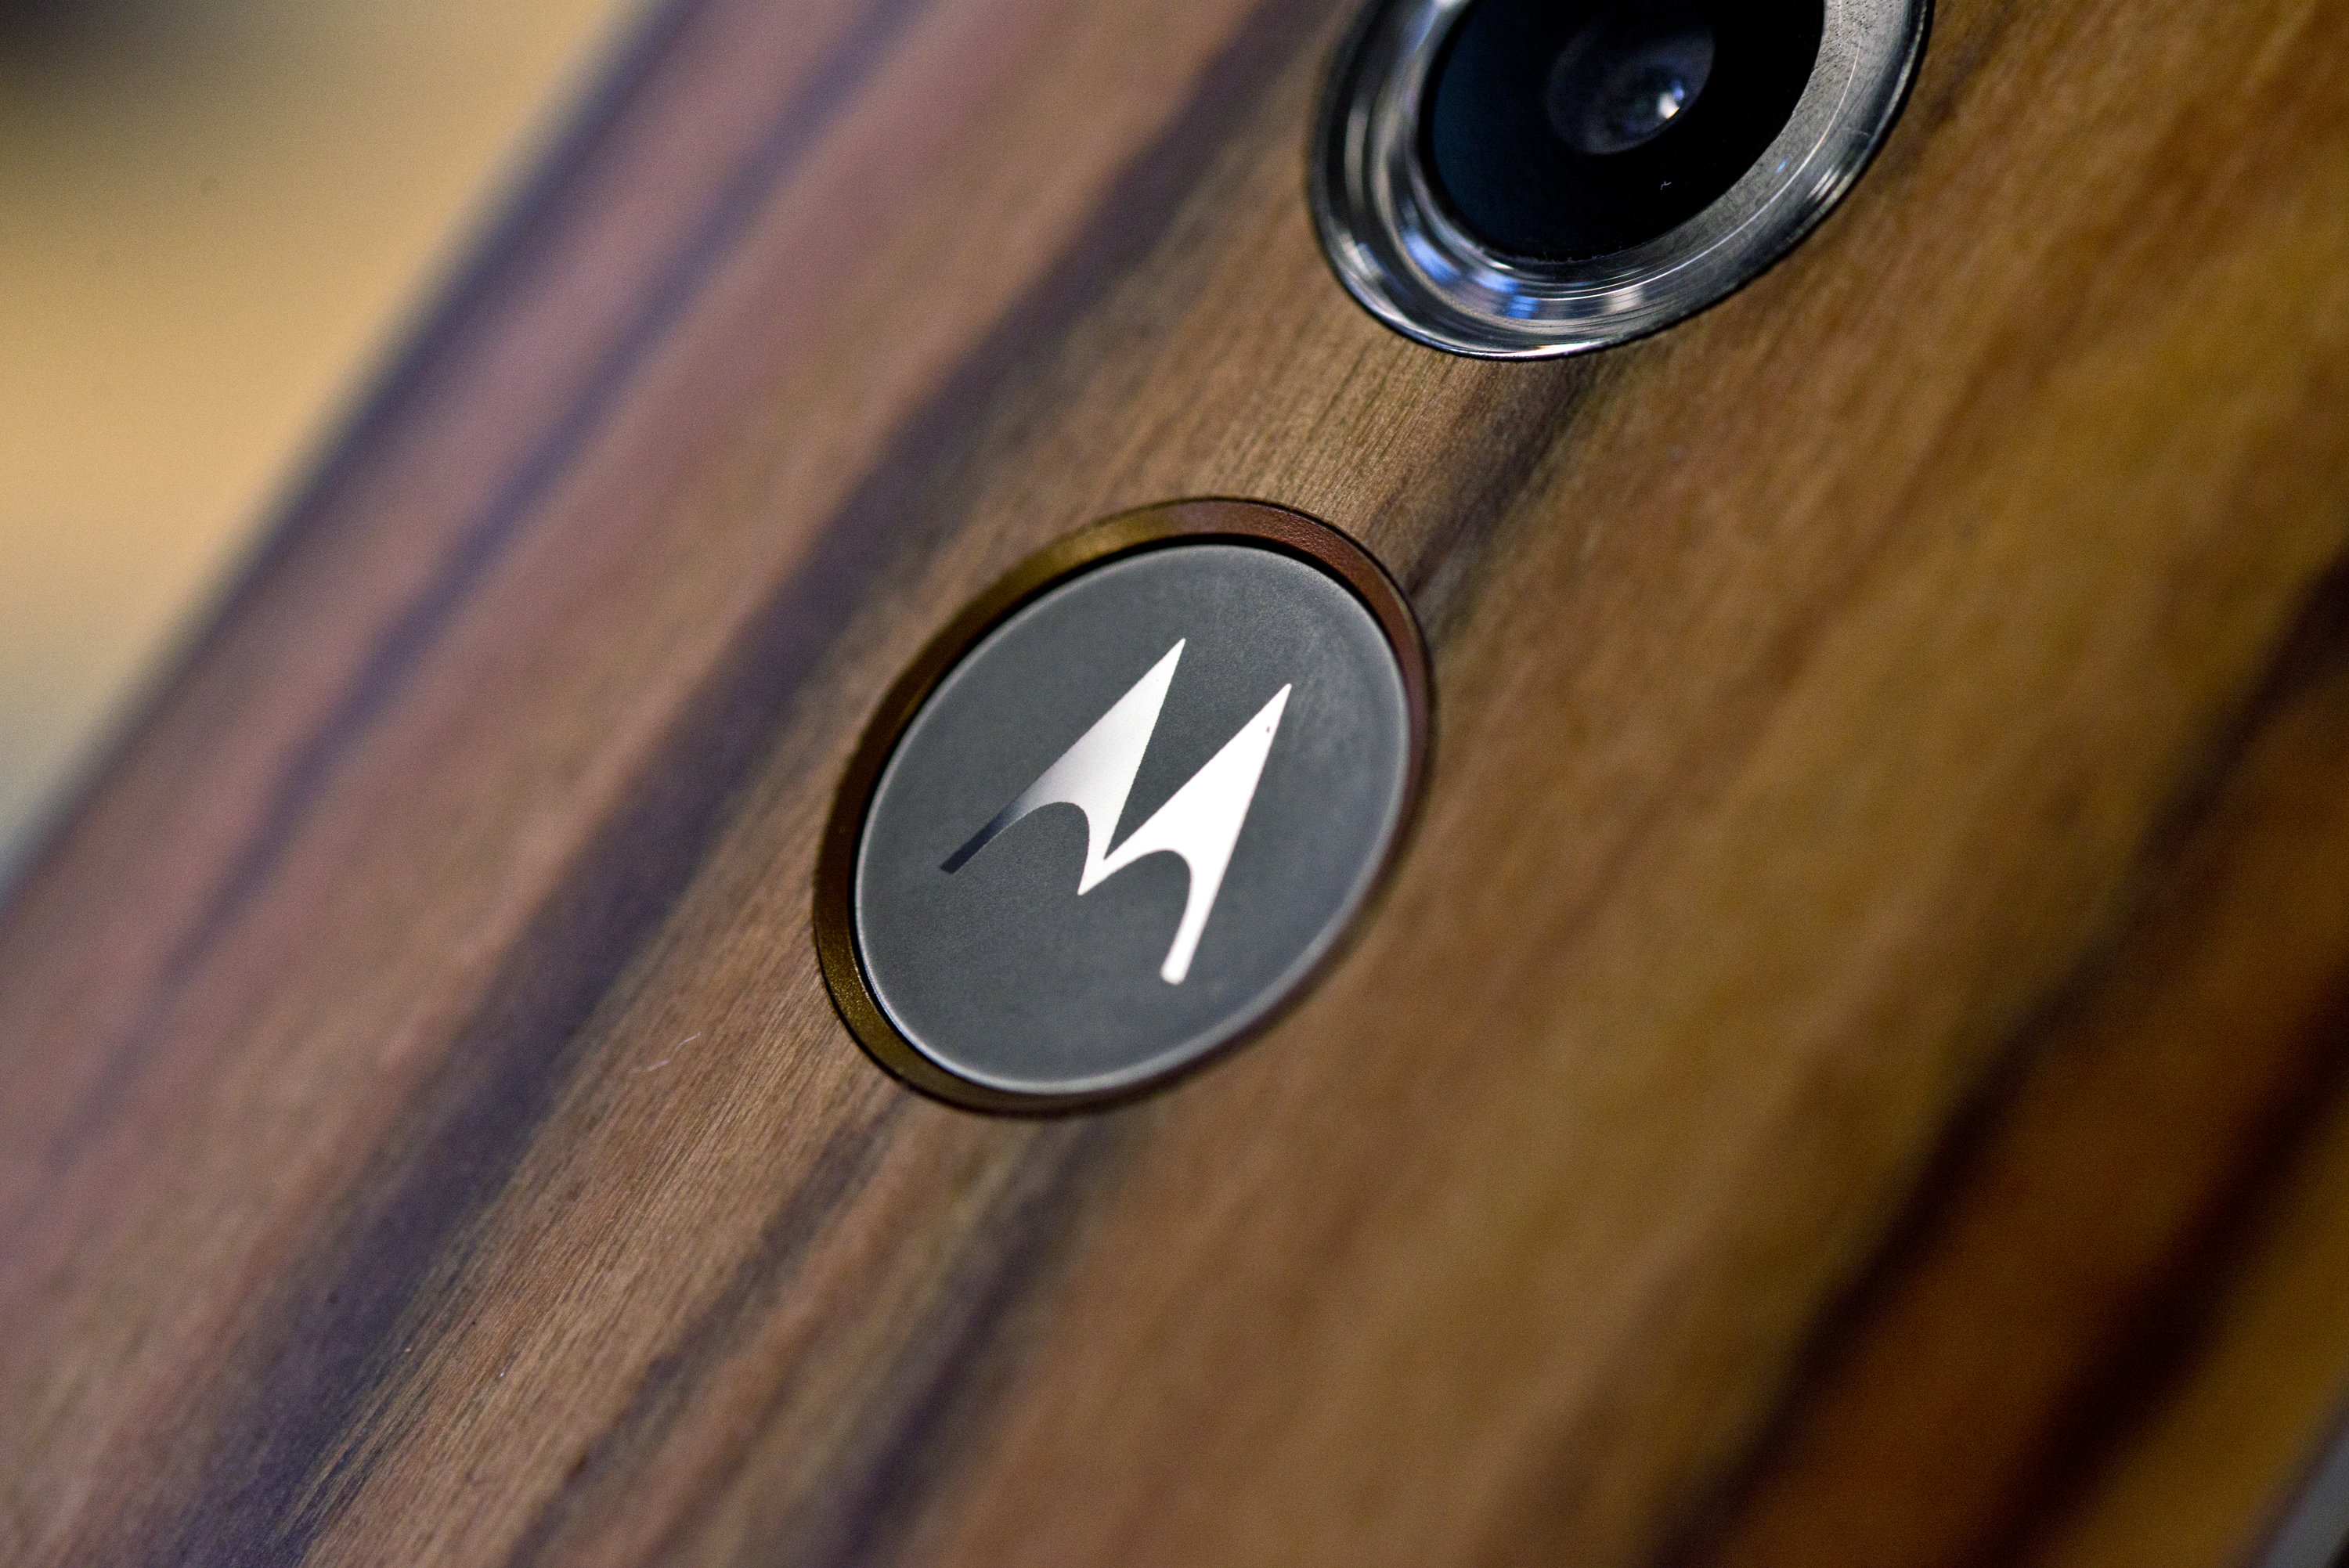 The Motorola logo on the Motorola Moto X (2014 edition)